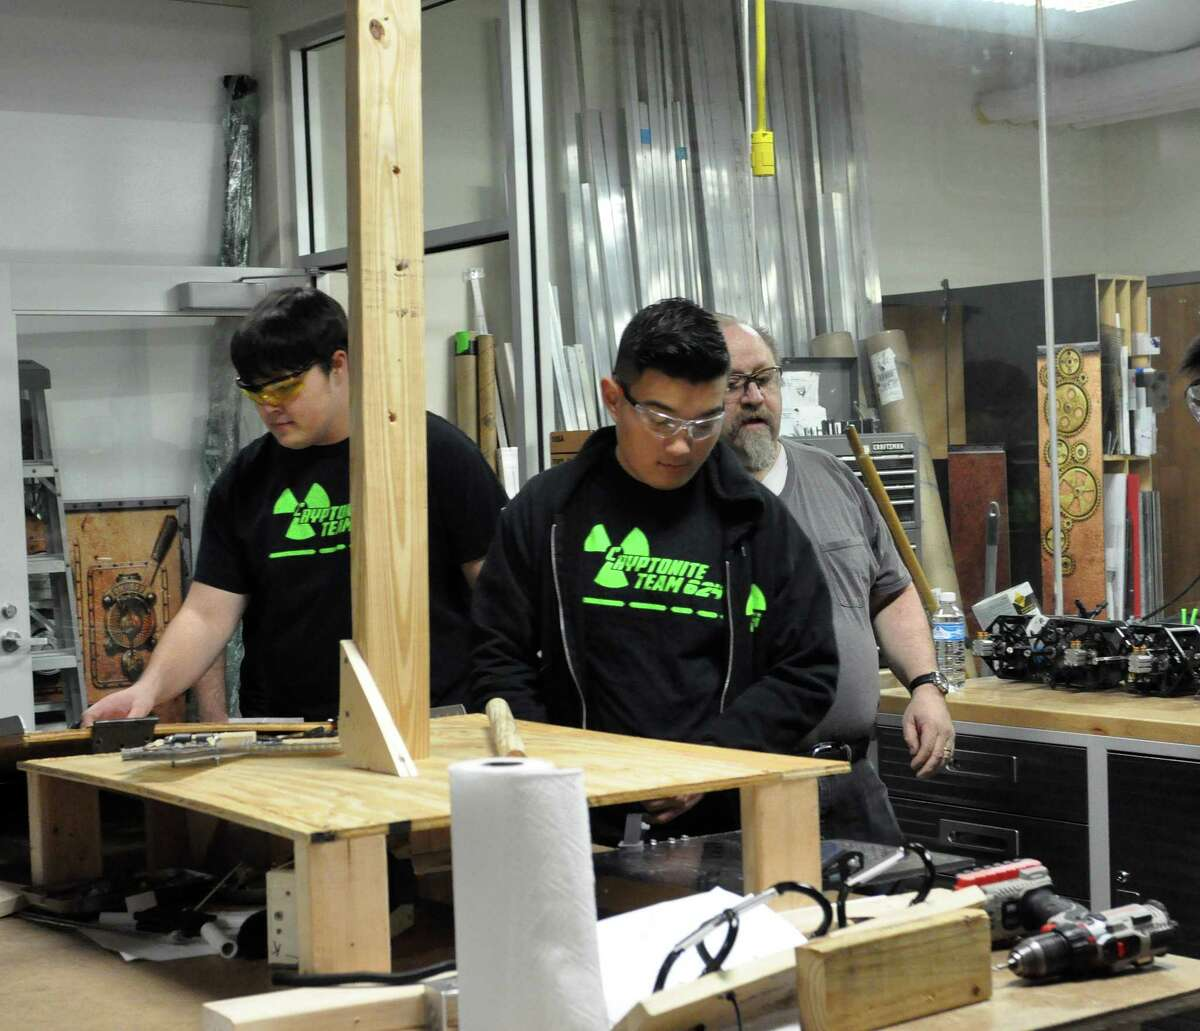 Students fromCinco Ranch High School Robotics Team 624 work on their machine for the 2018 international FIRST competition at a special facility for Science, Technology, Engineering and Math education built by theKaty Independent School District. The national championship will be held at the George R. Brown Convention Center from April 18-21.